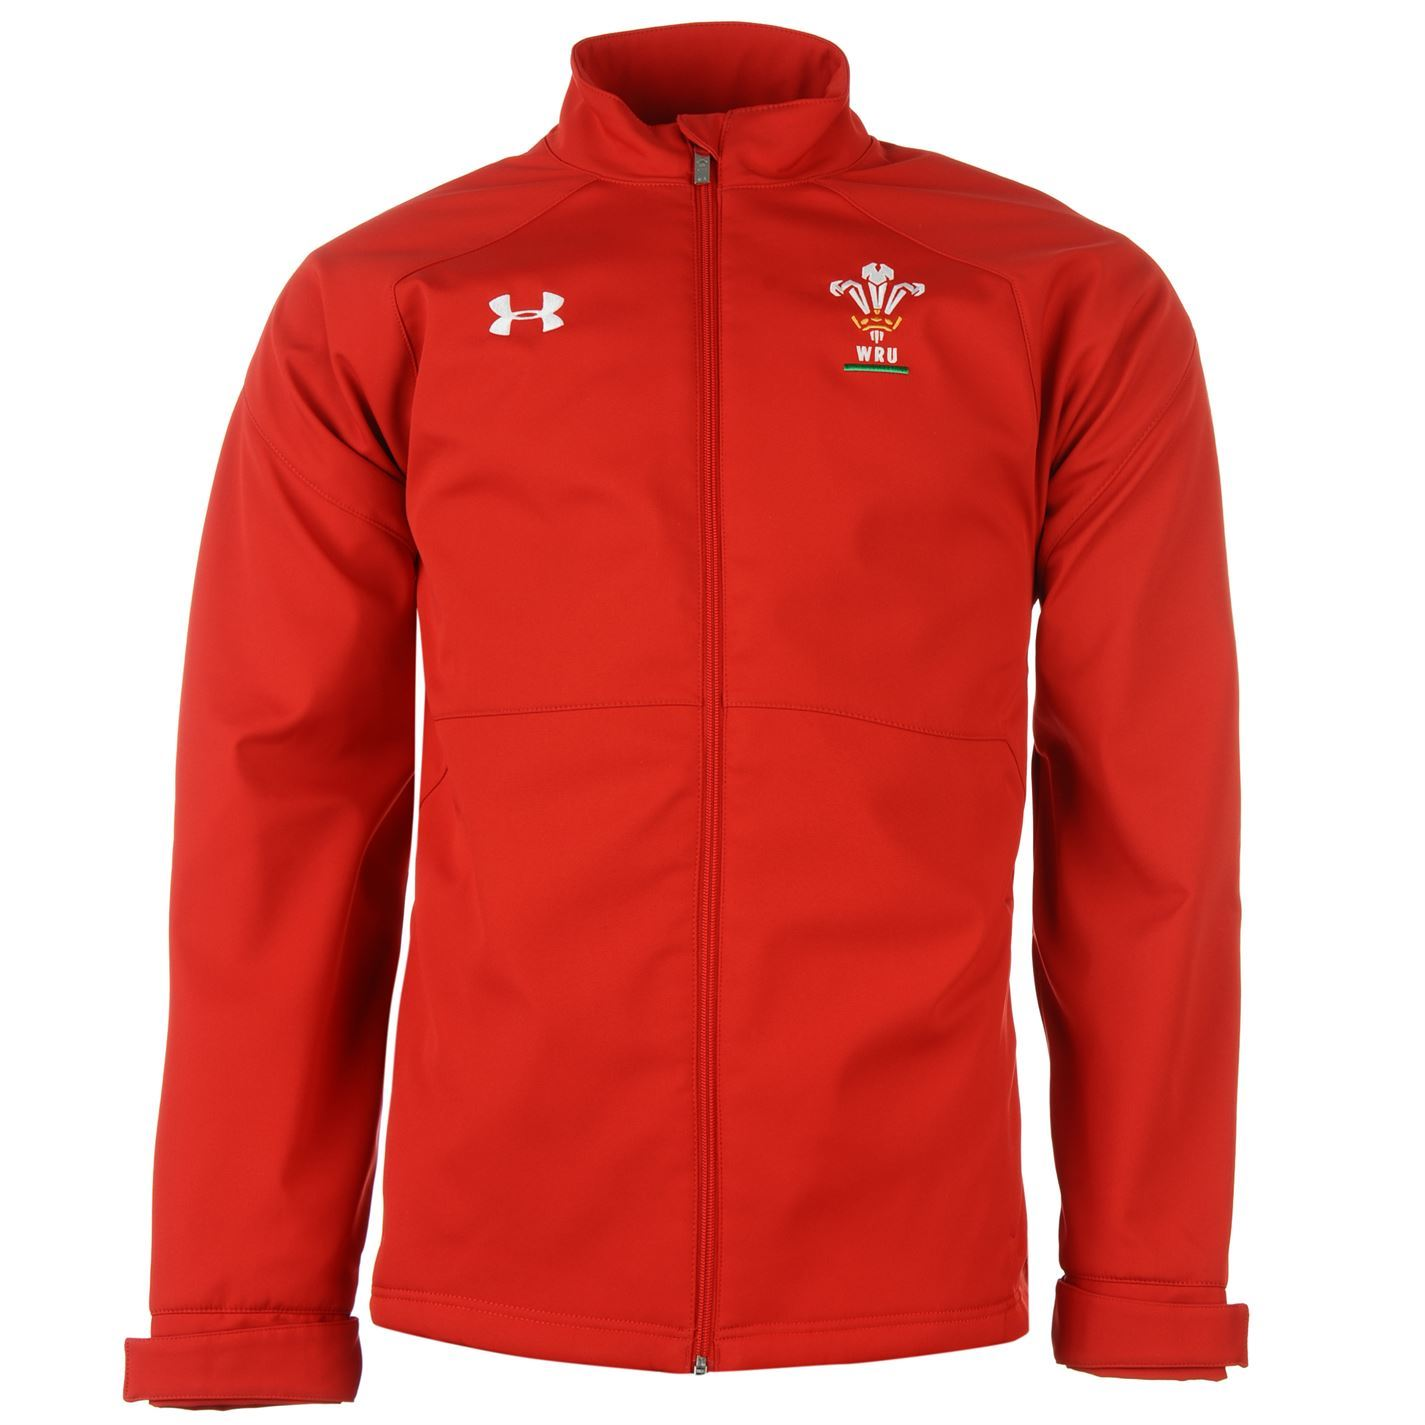 under armour mens wru mission jacket full zip top outdoor